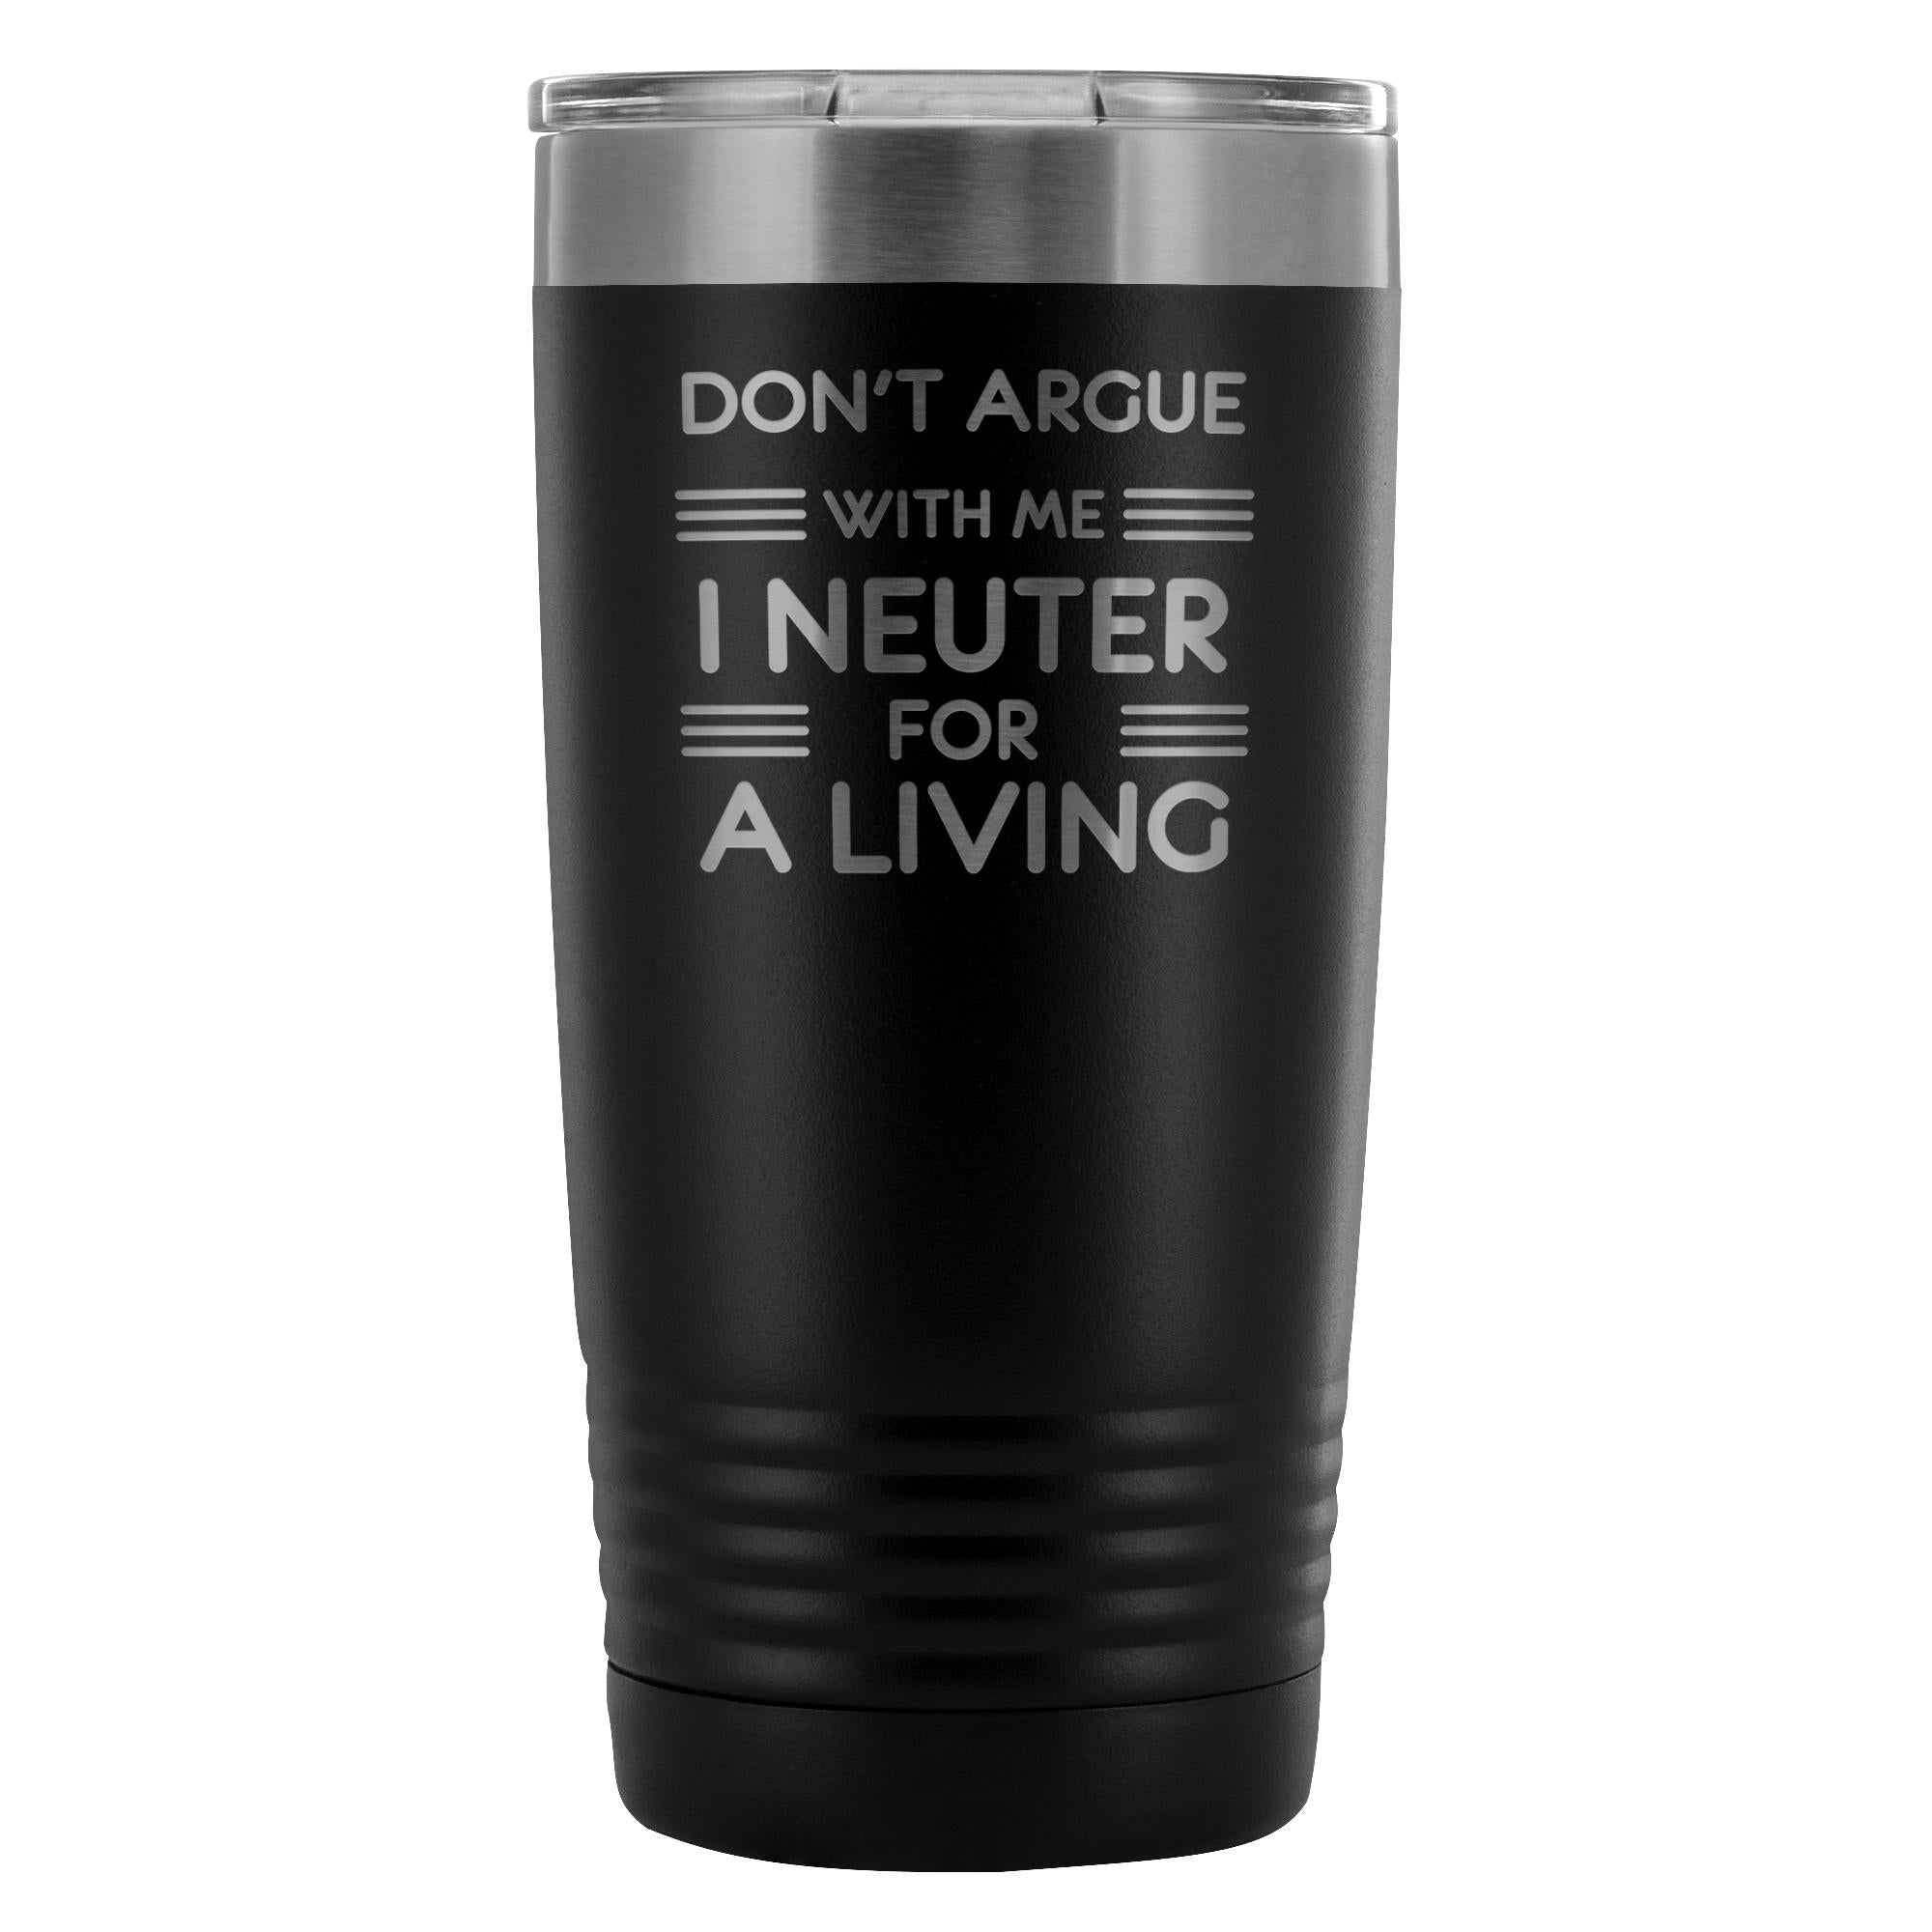 Don't argue with me I neuter for a living 20oz Vacuum Tumbler